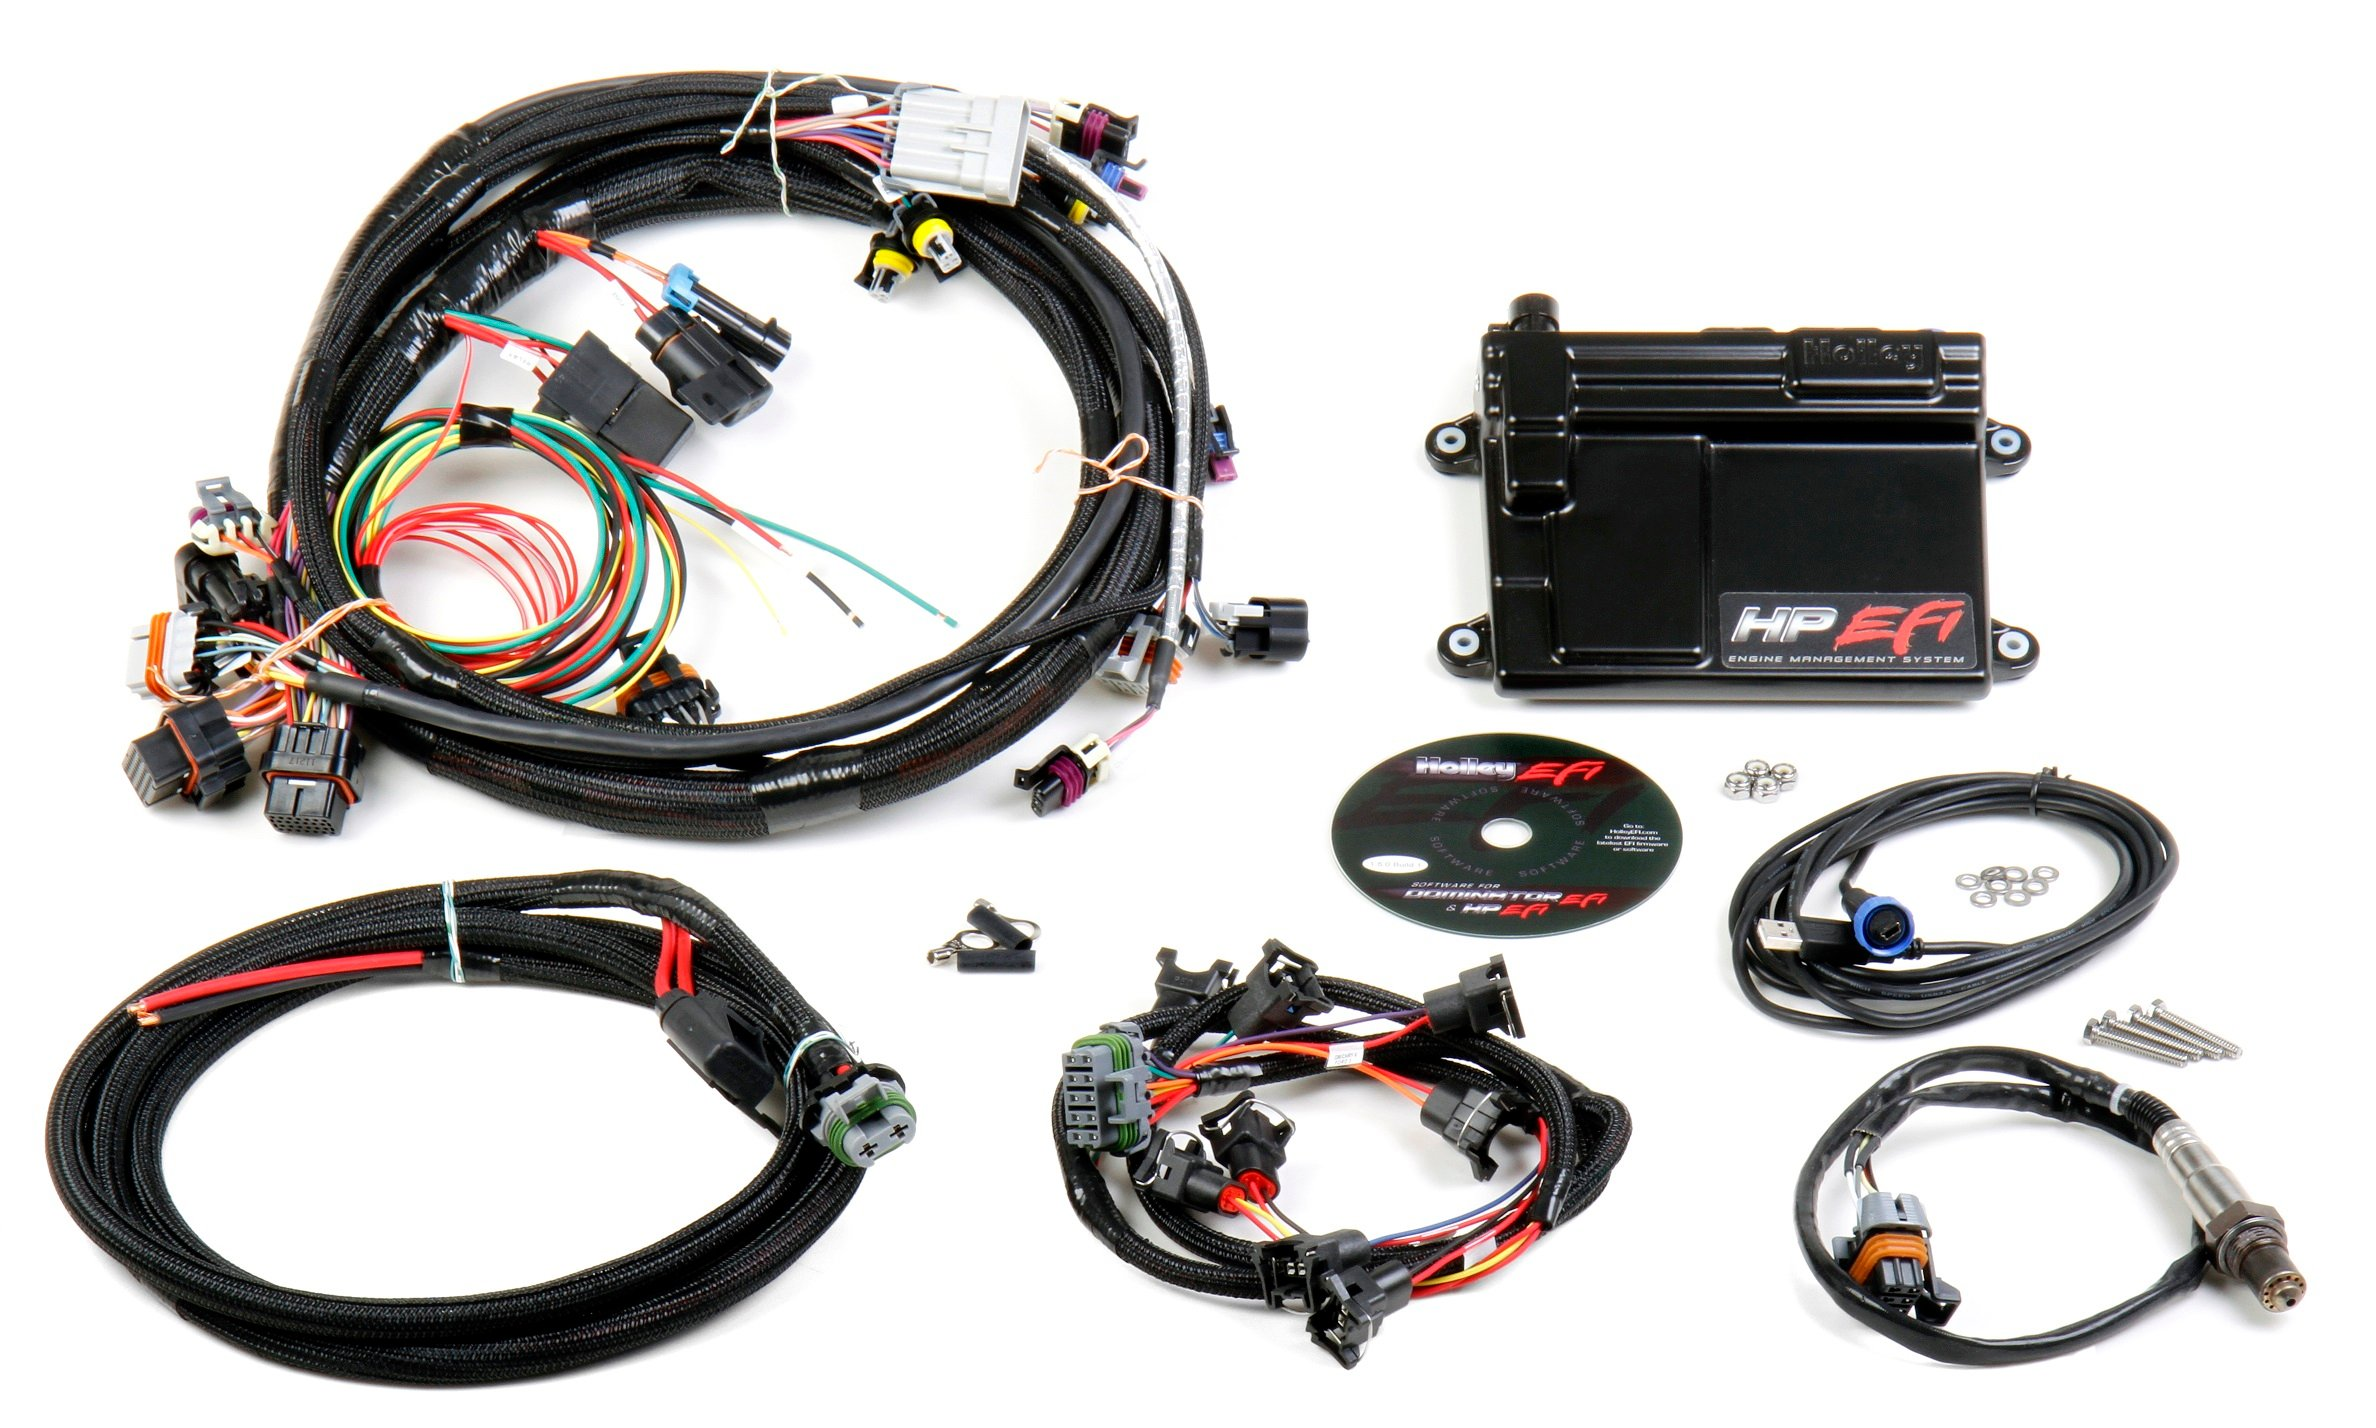 550 602 holley efi 550 602 hp efi ecu & harness kits ls wiring harness and computer at alyssarenee.co